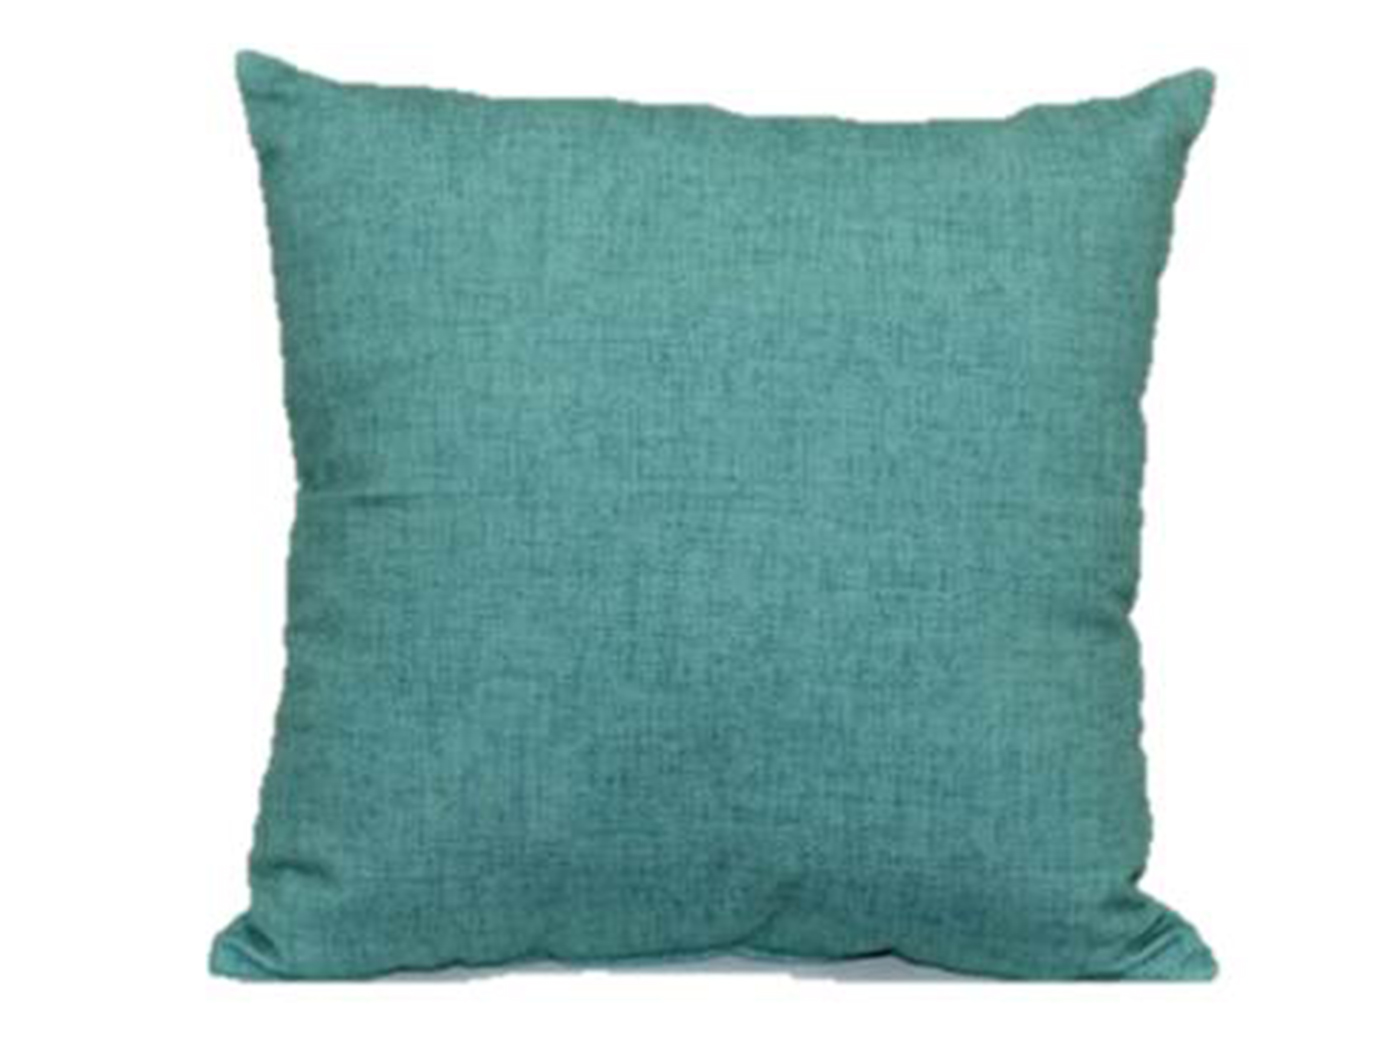 Pacific Linen Turquoise Outdoor Pillow 17""